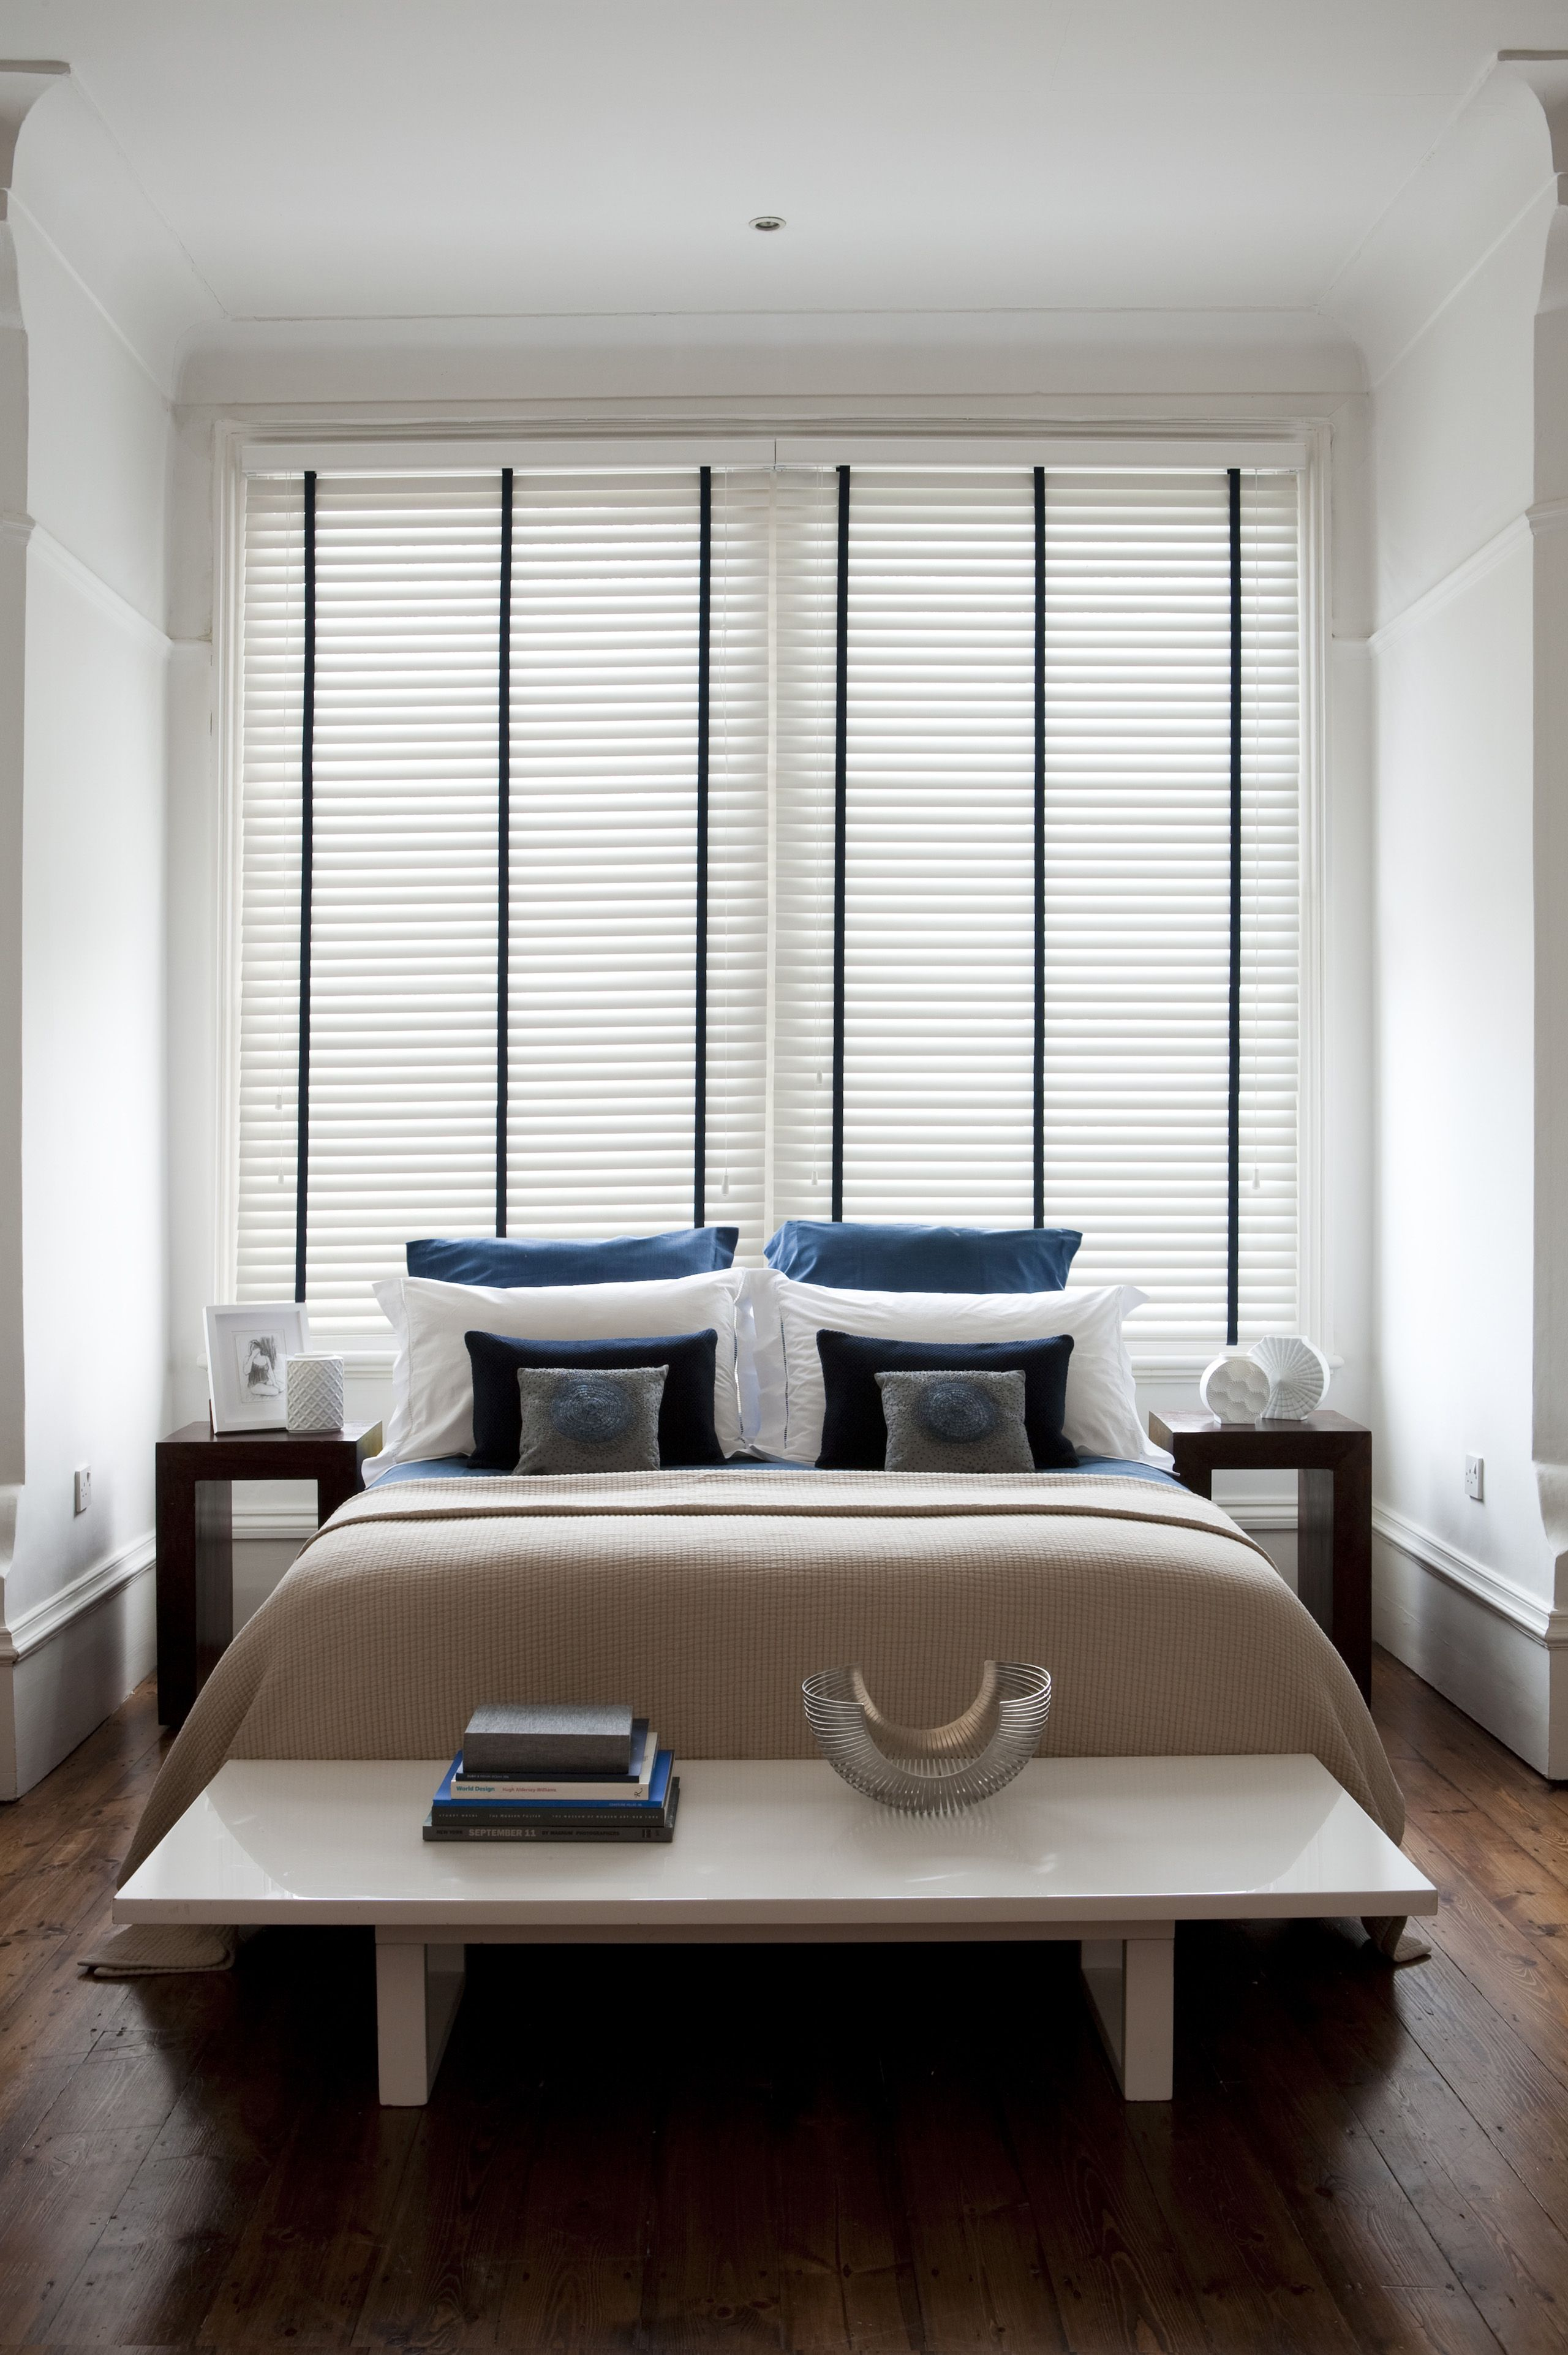 Made To Measure Wooden Venetian Blinds Interiordesign Blinds